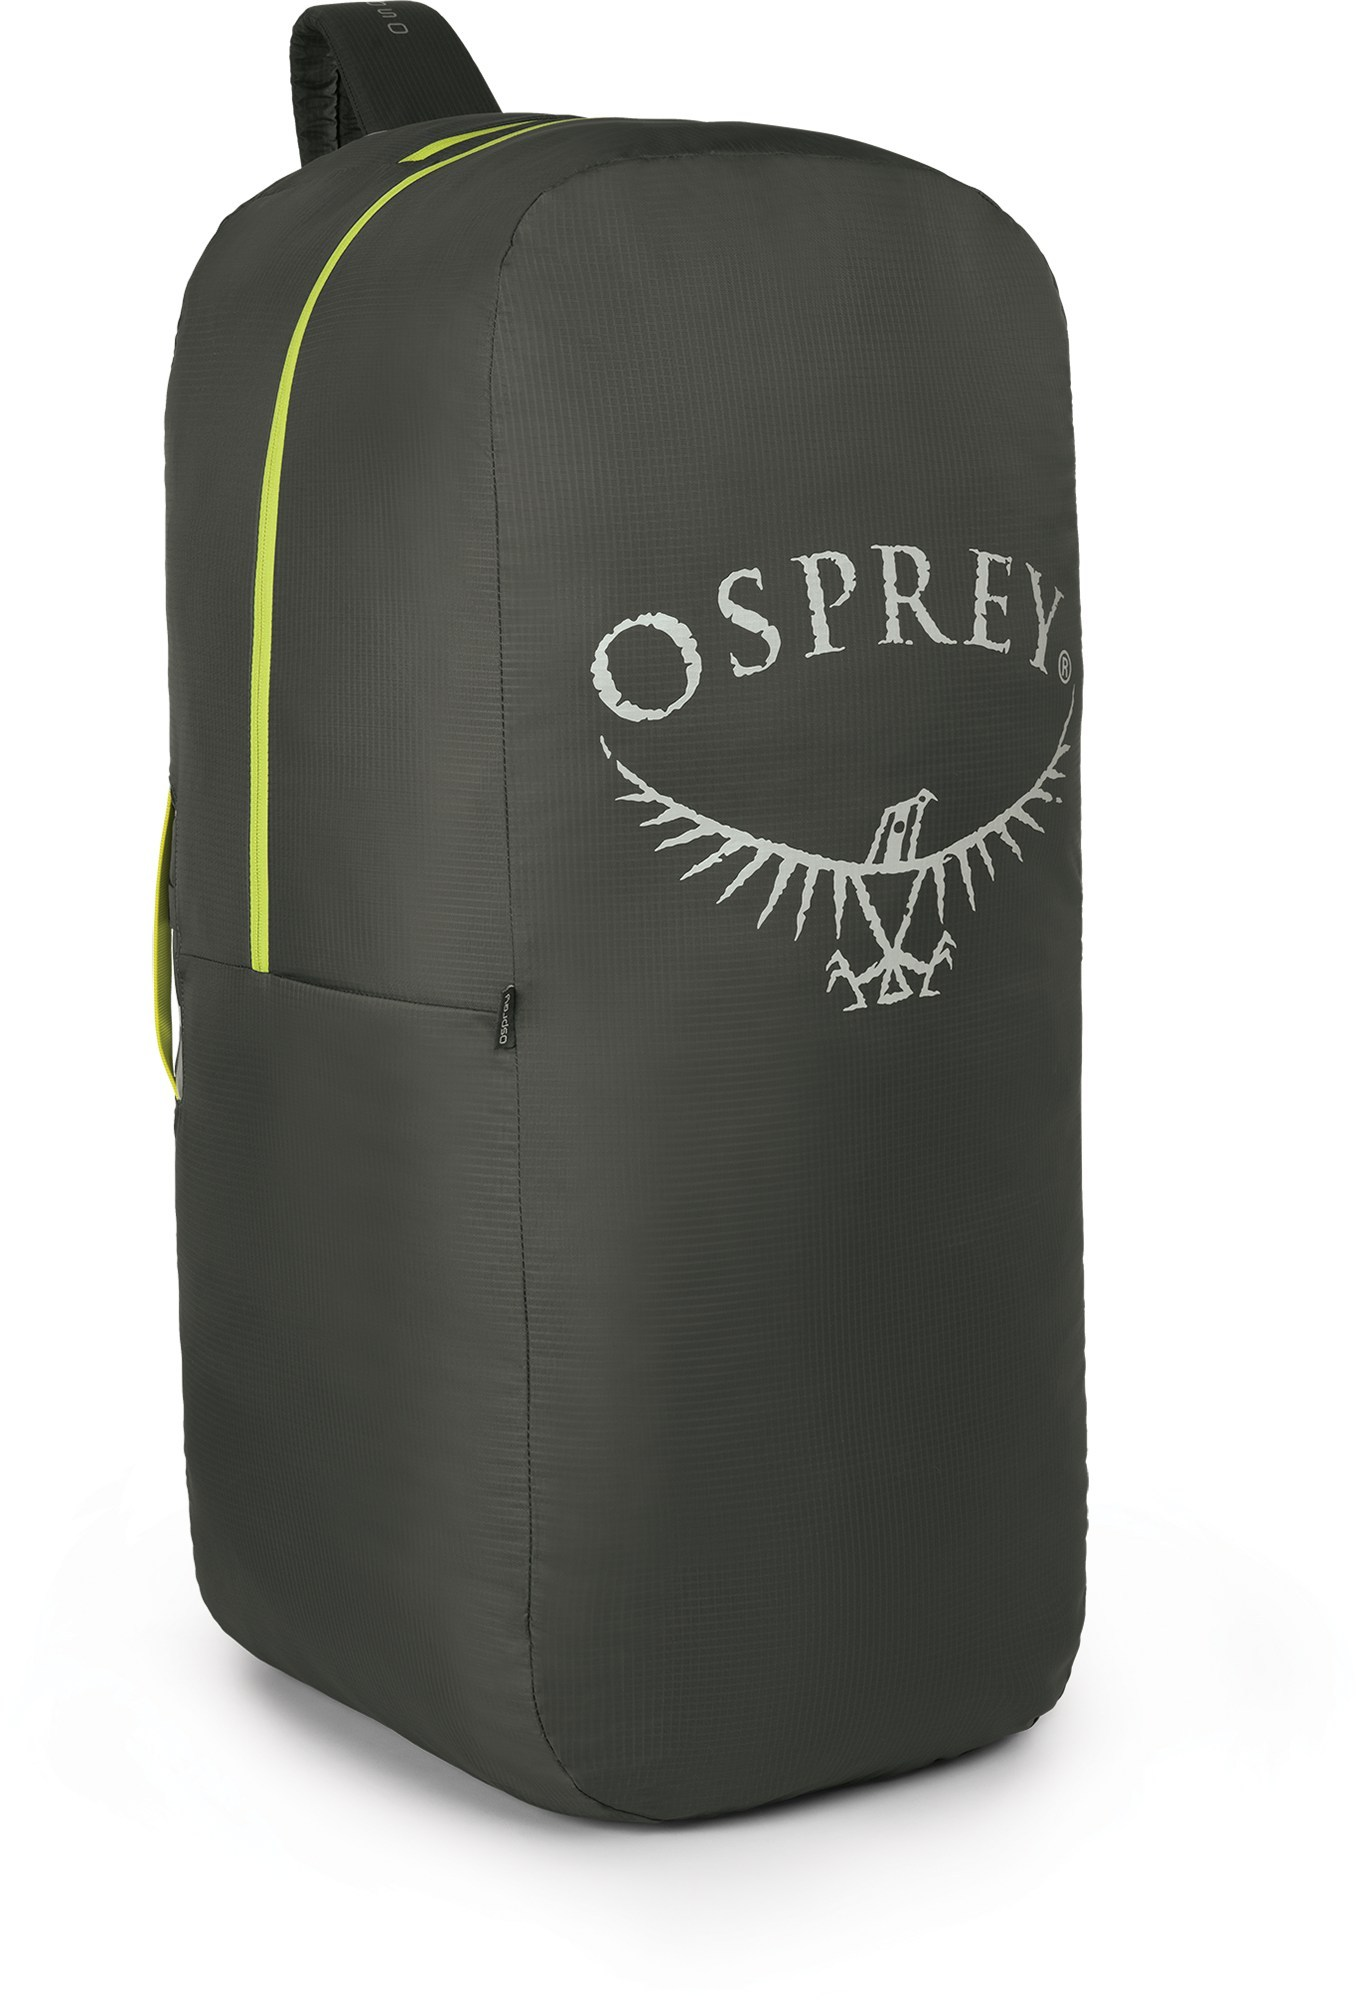 Osprey Airporter LZ Pack Duffel - Large